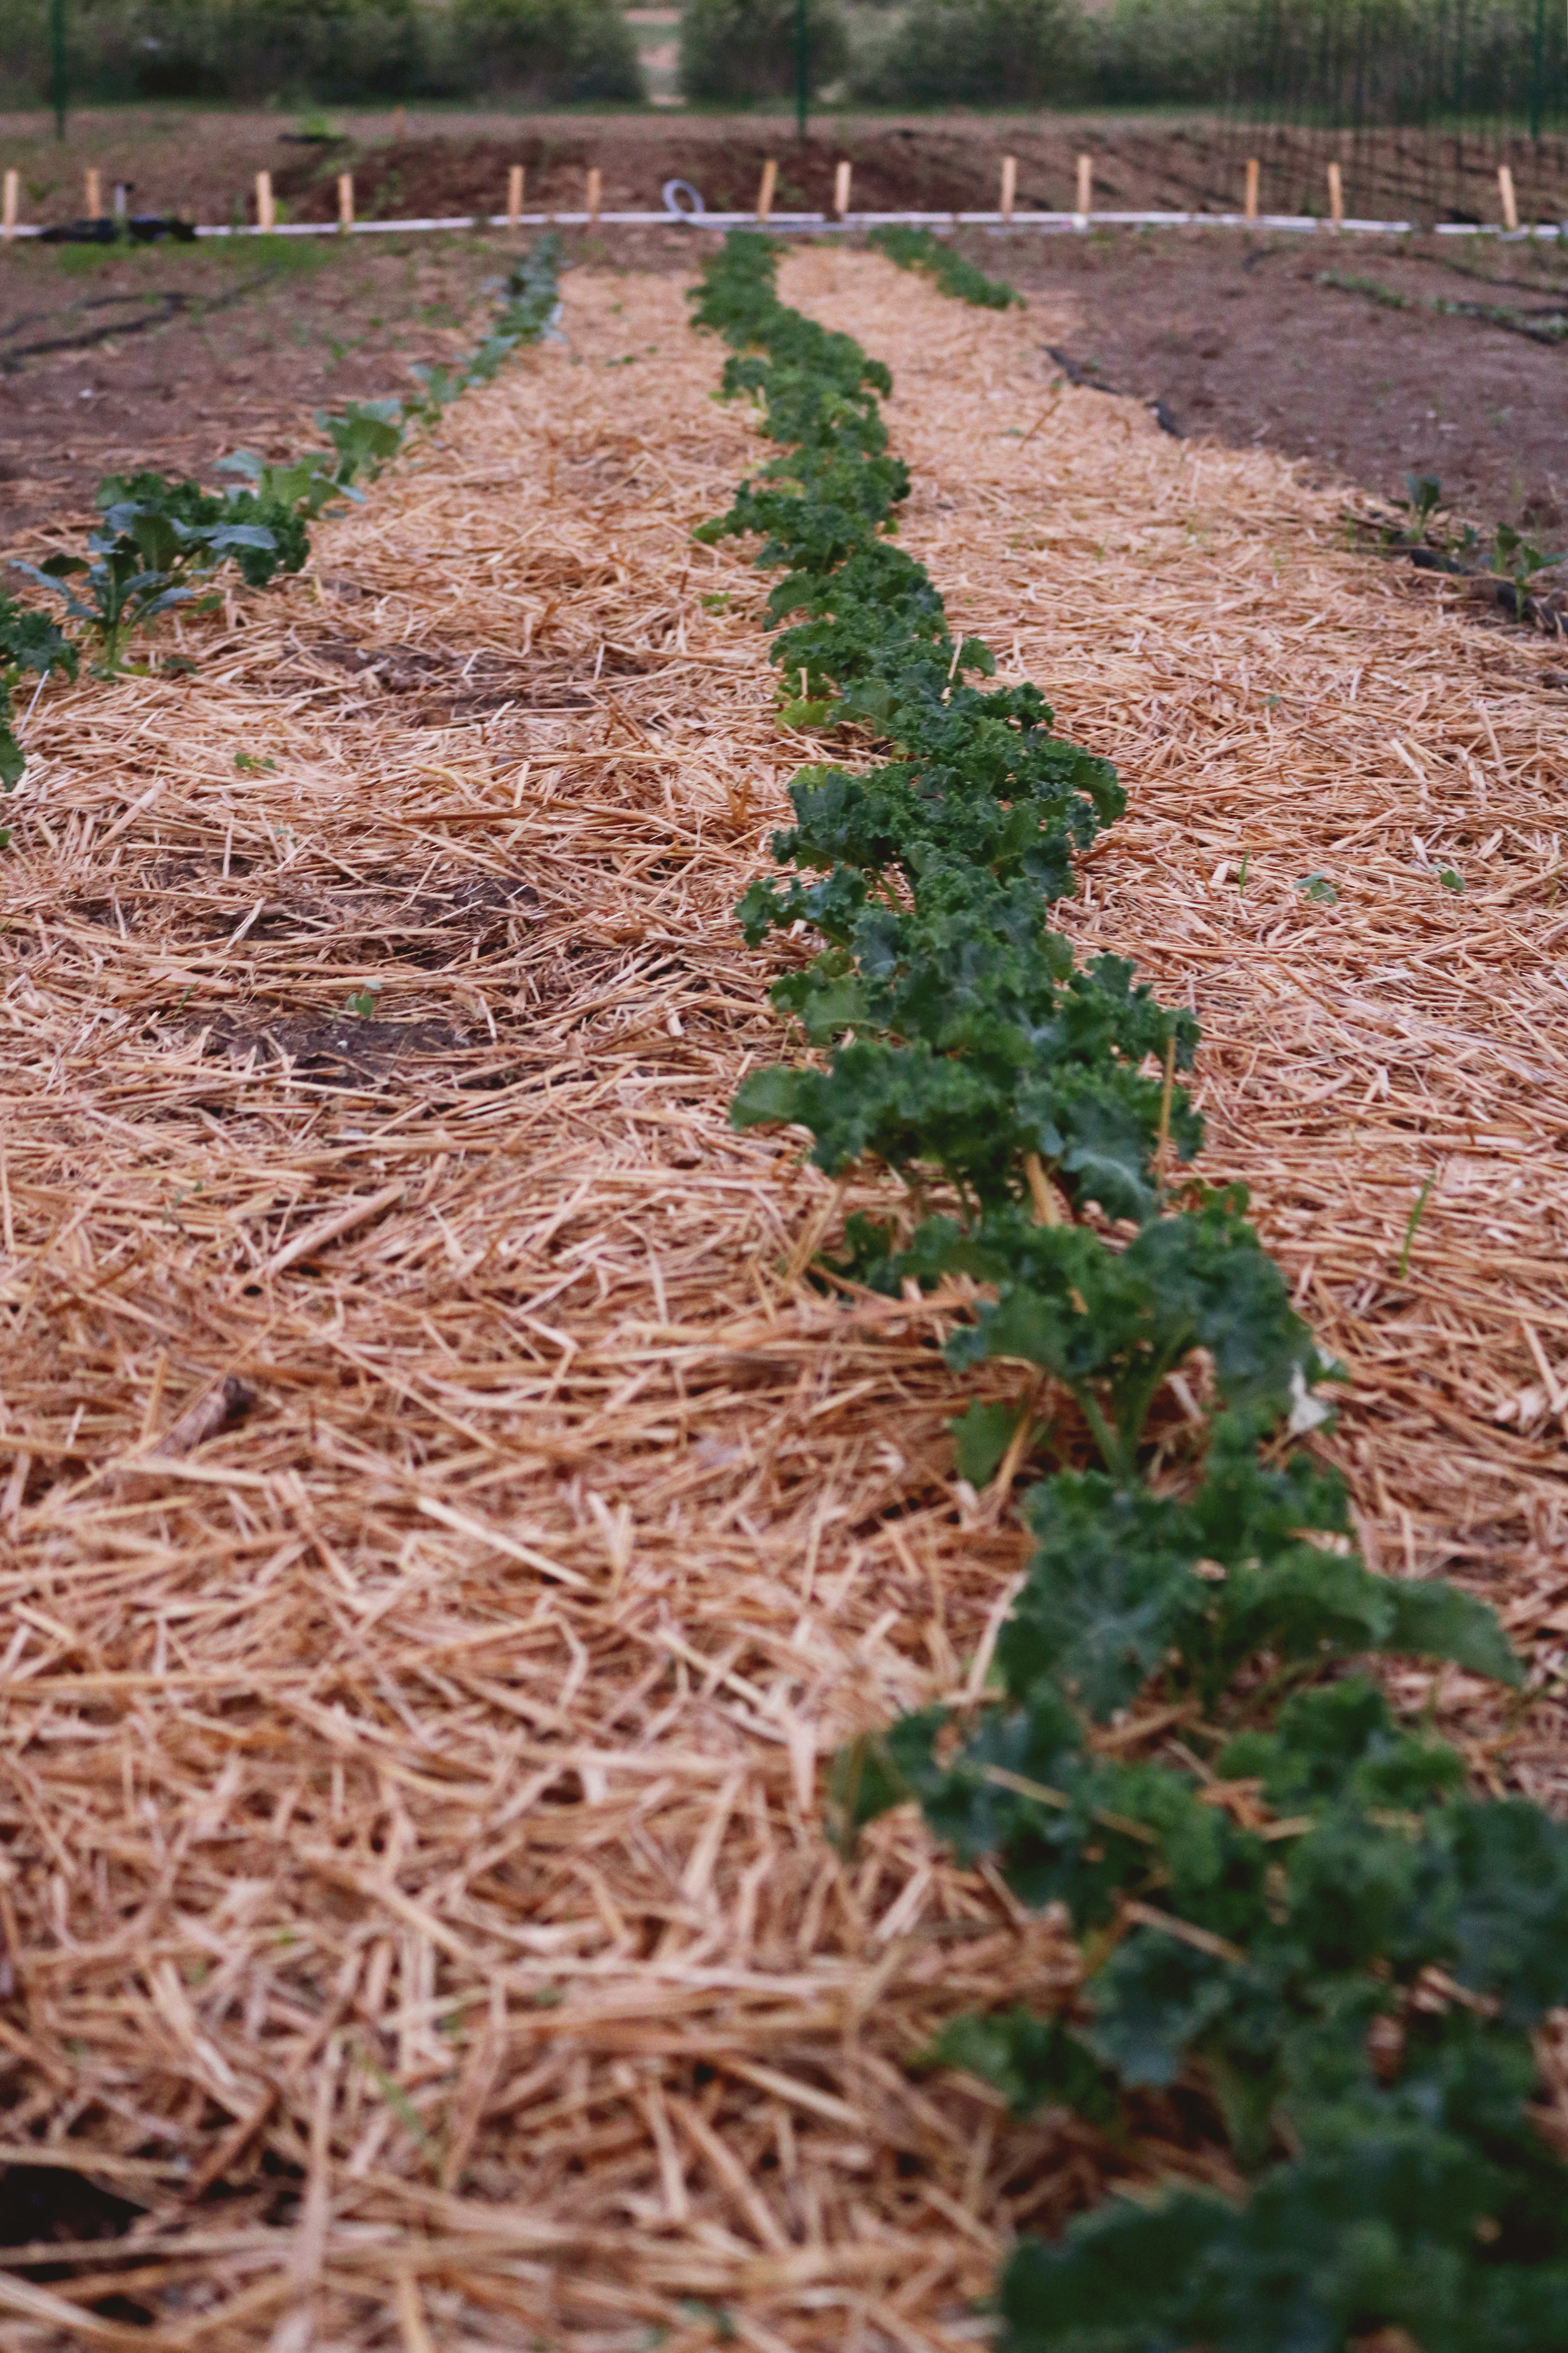 Mulches To Use For No Till Gardening